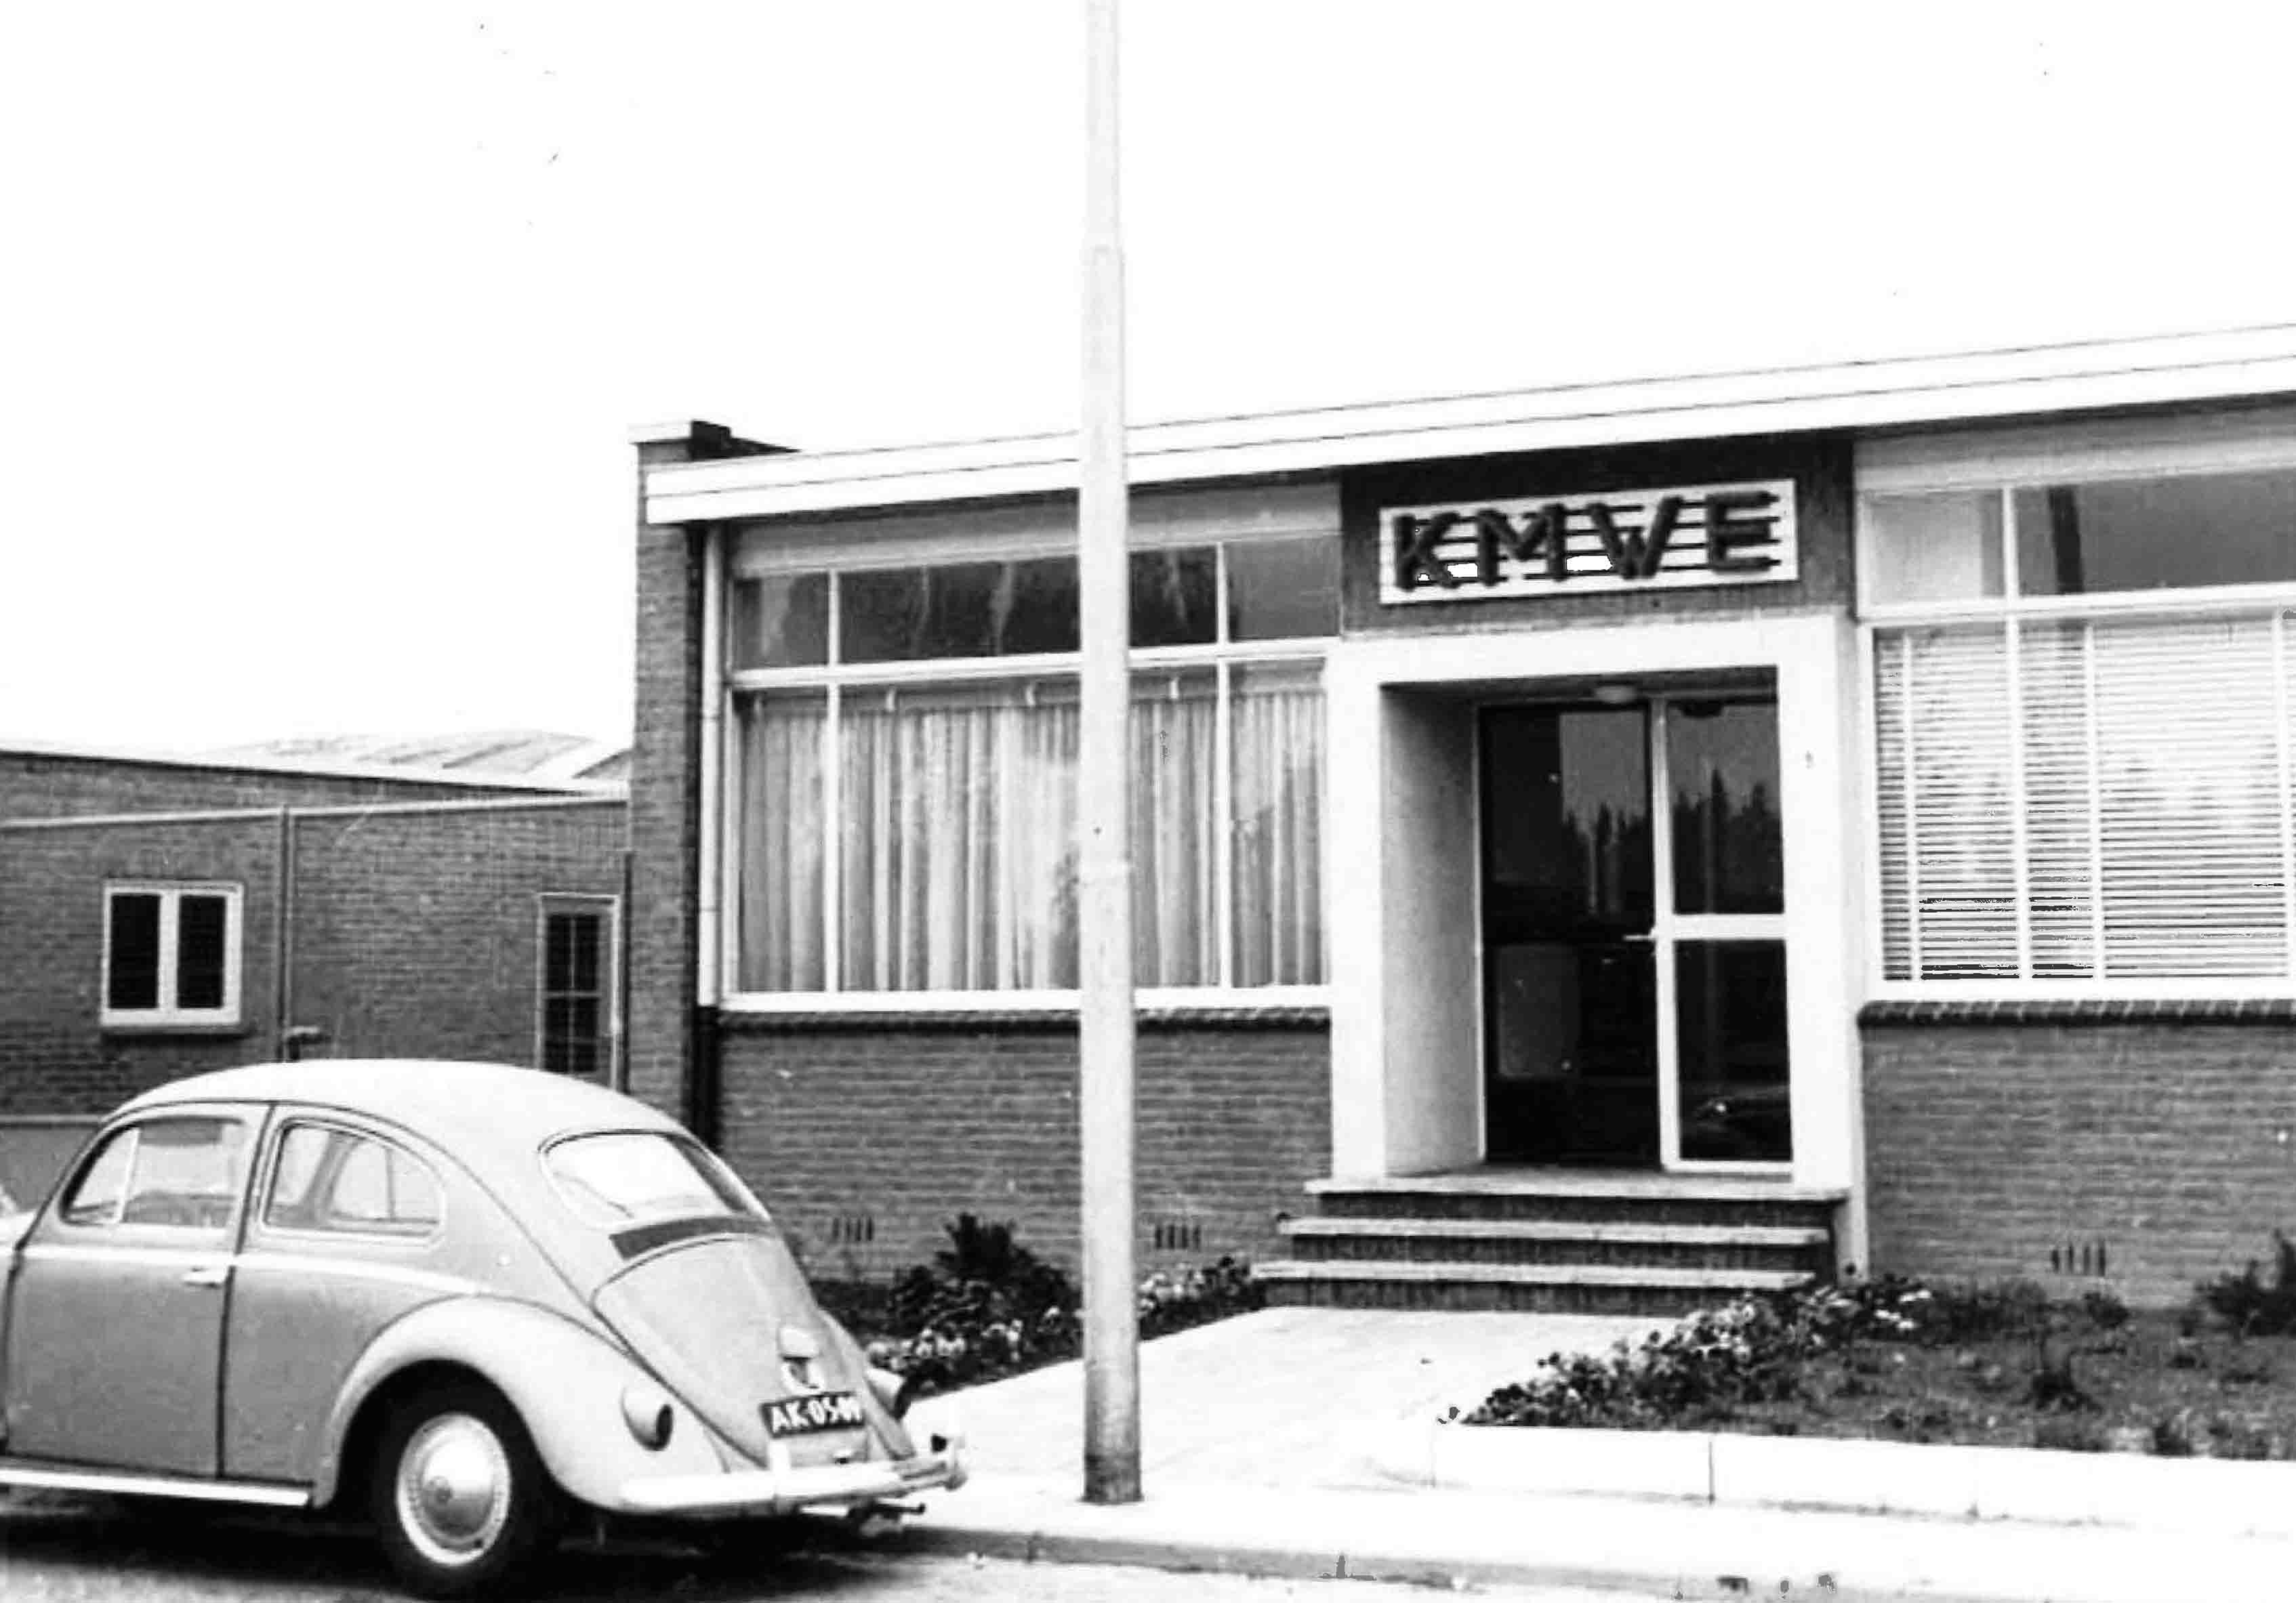 KMWE was founded in 1955.